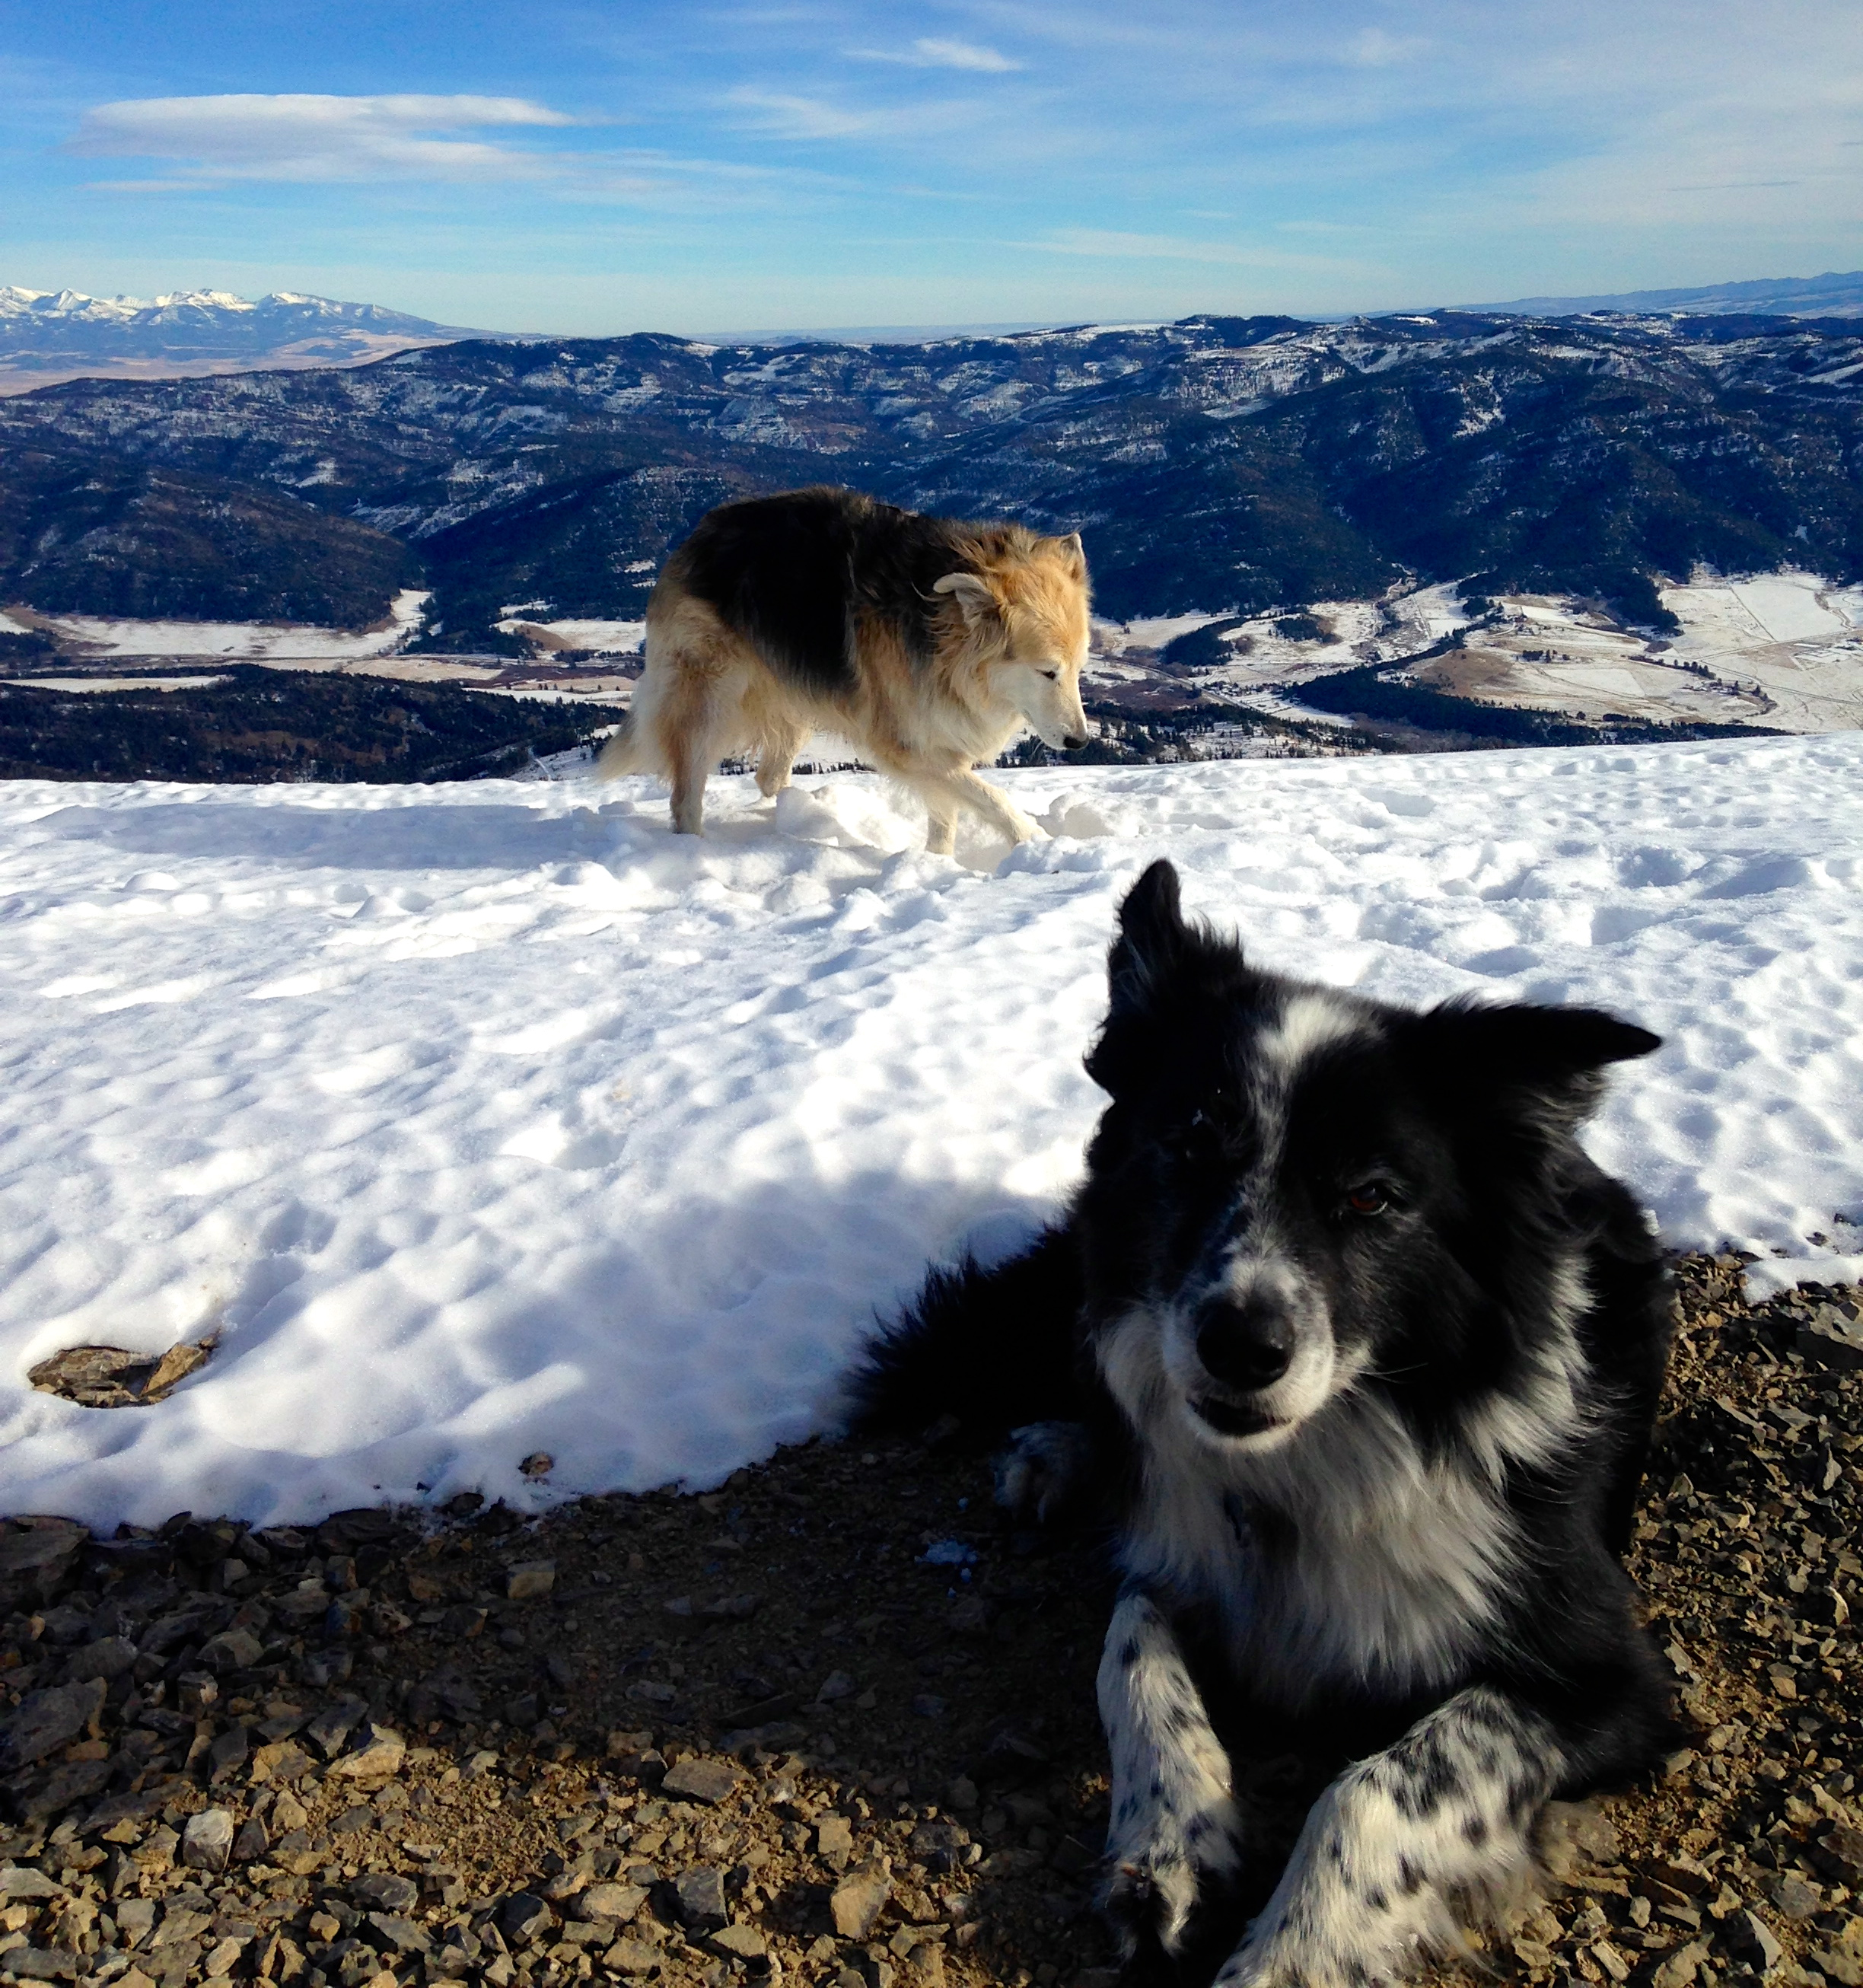 Happy dogs chill'n on the summit.